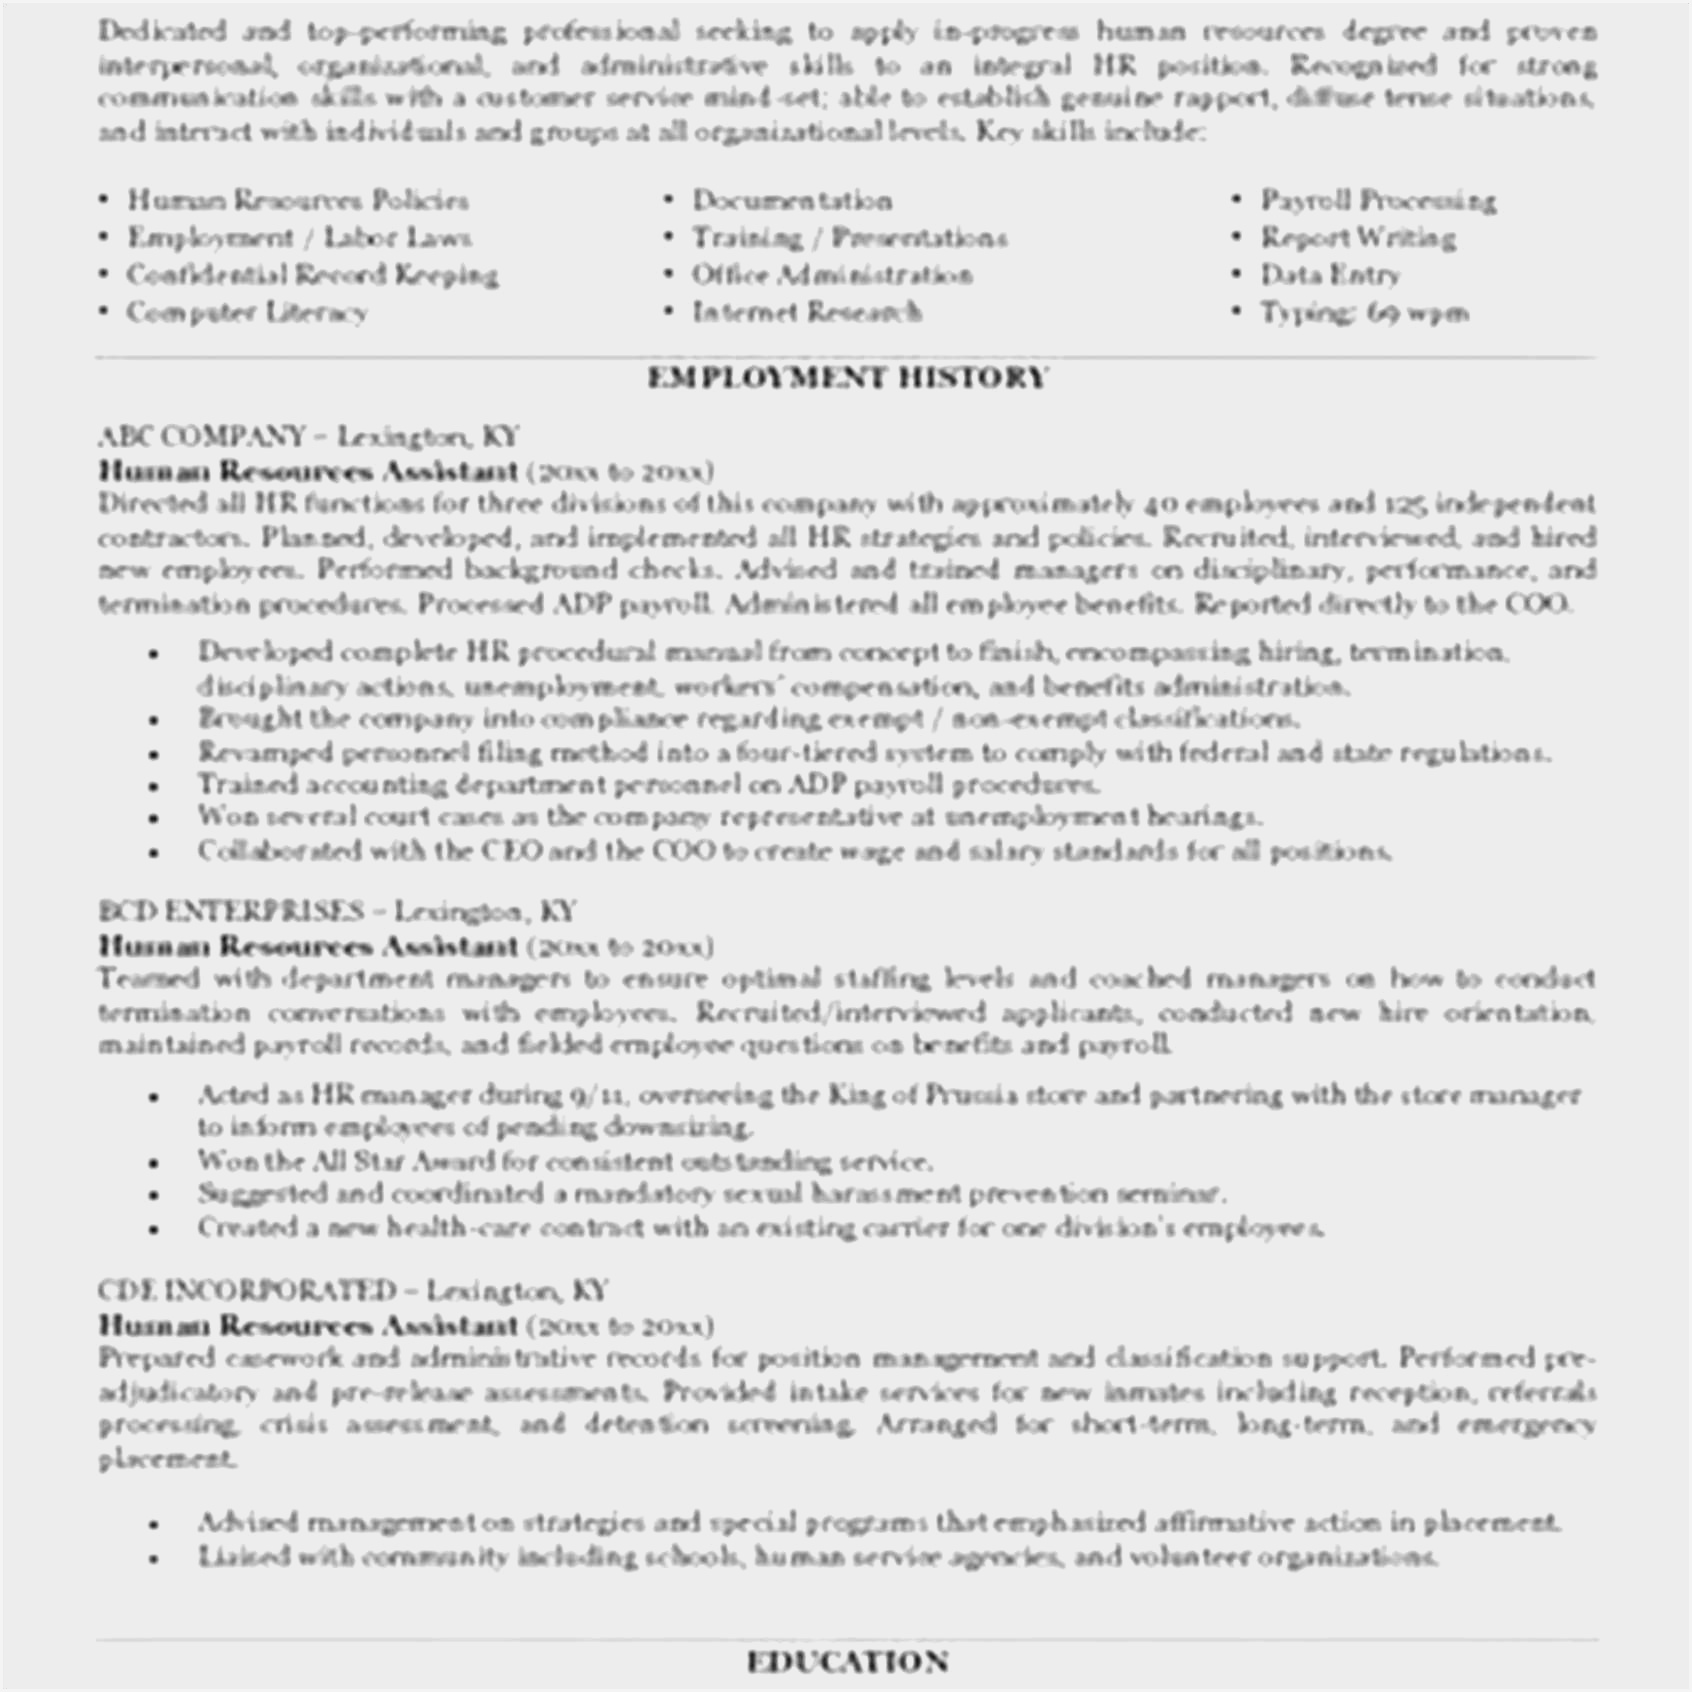 healthcare administrative assistant resume examples sample medical rabbit reputation Resume Medical Administrative Assistant Resume